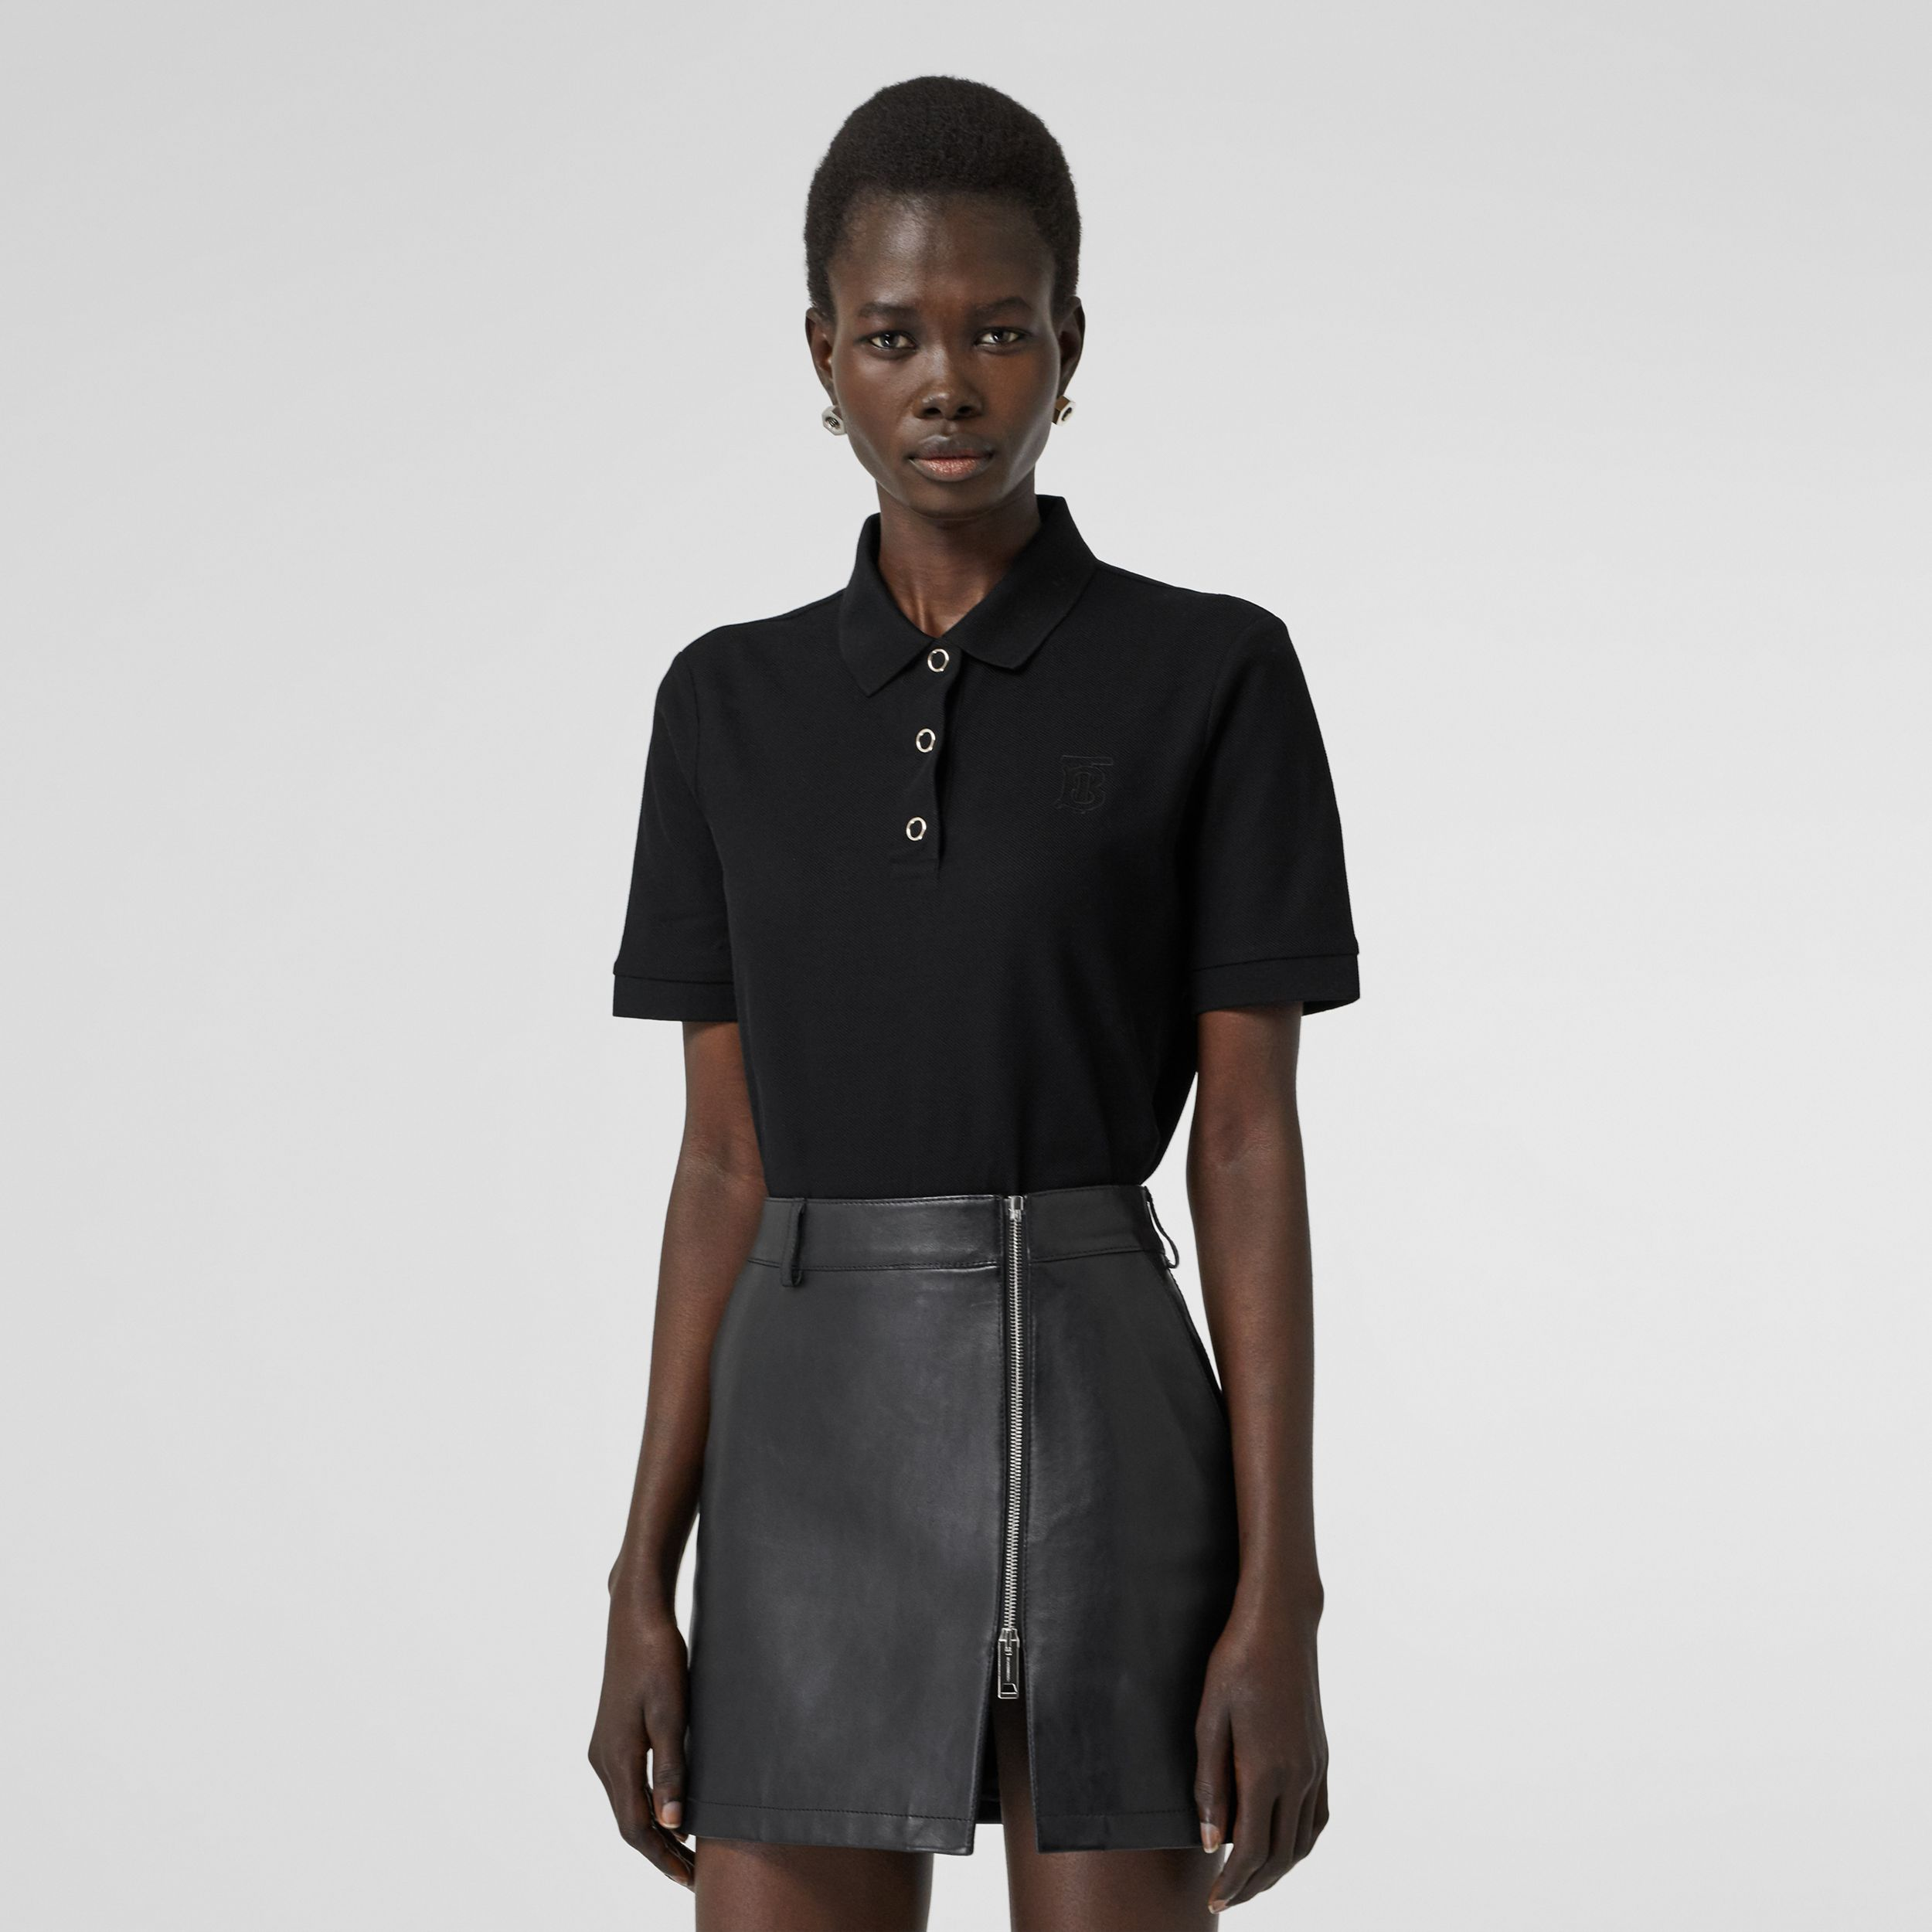 Monogram Motif Cotton Piqué Polo Shirt in Black - Women | Burberry Canada - 1